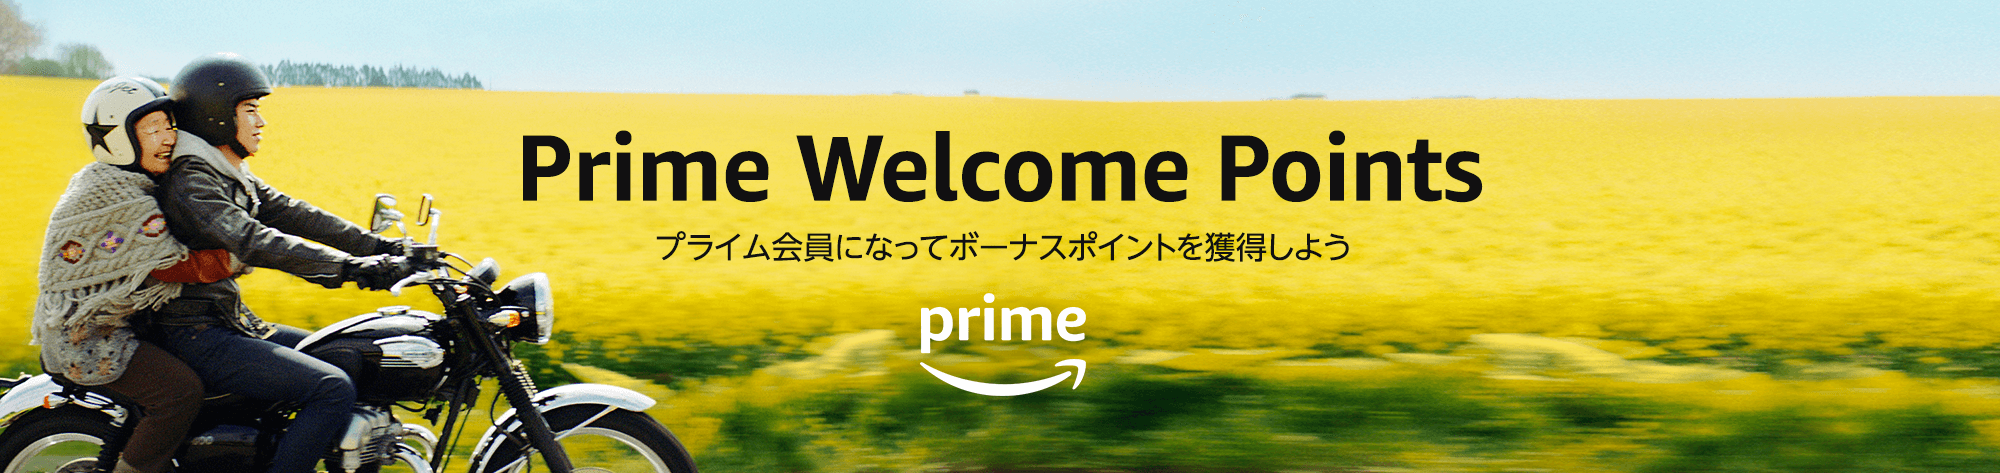 prime_welcome_points